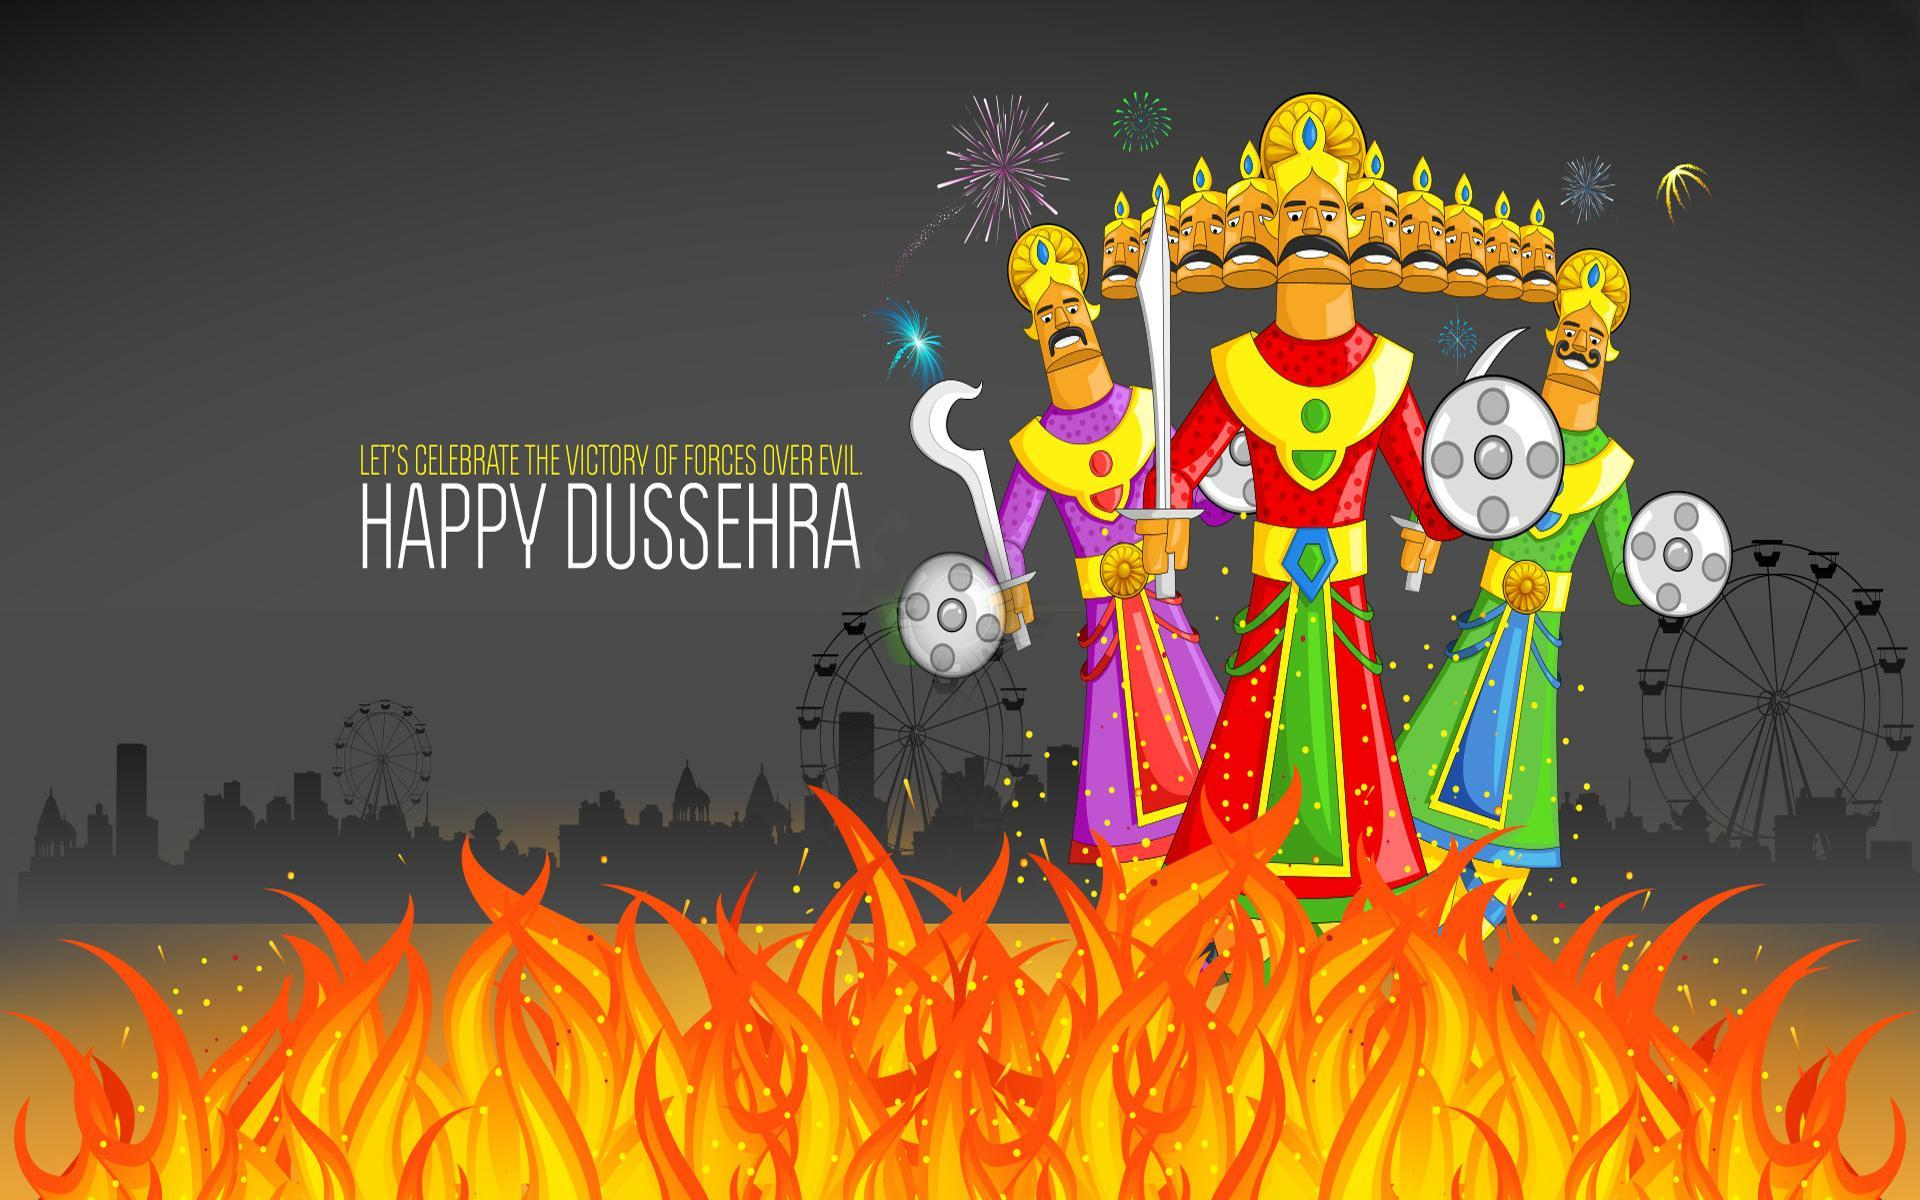 Happy Dussehra Wallpapers 2015 for Android - APK Download